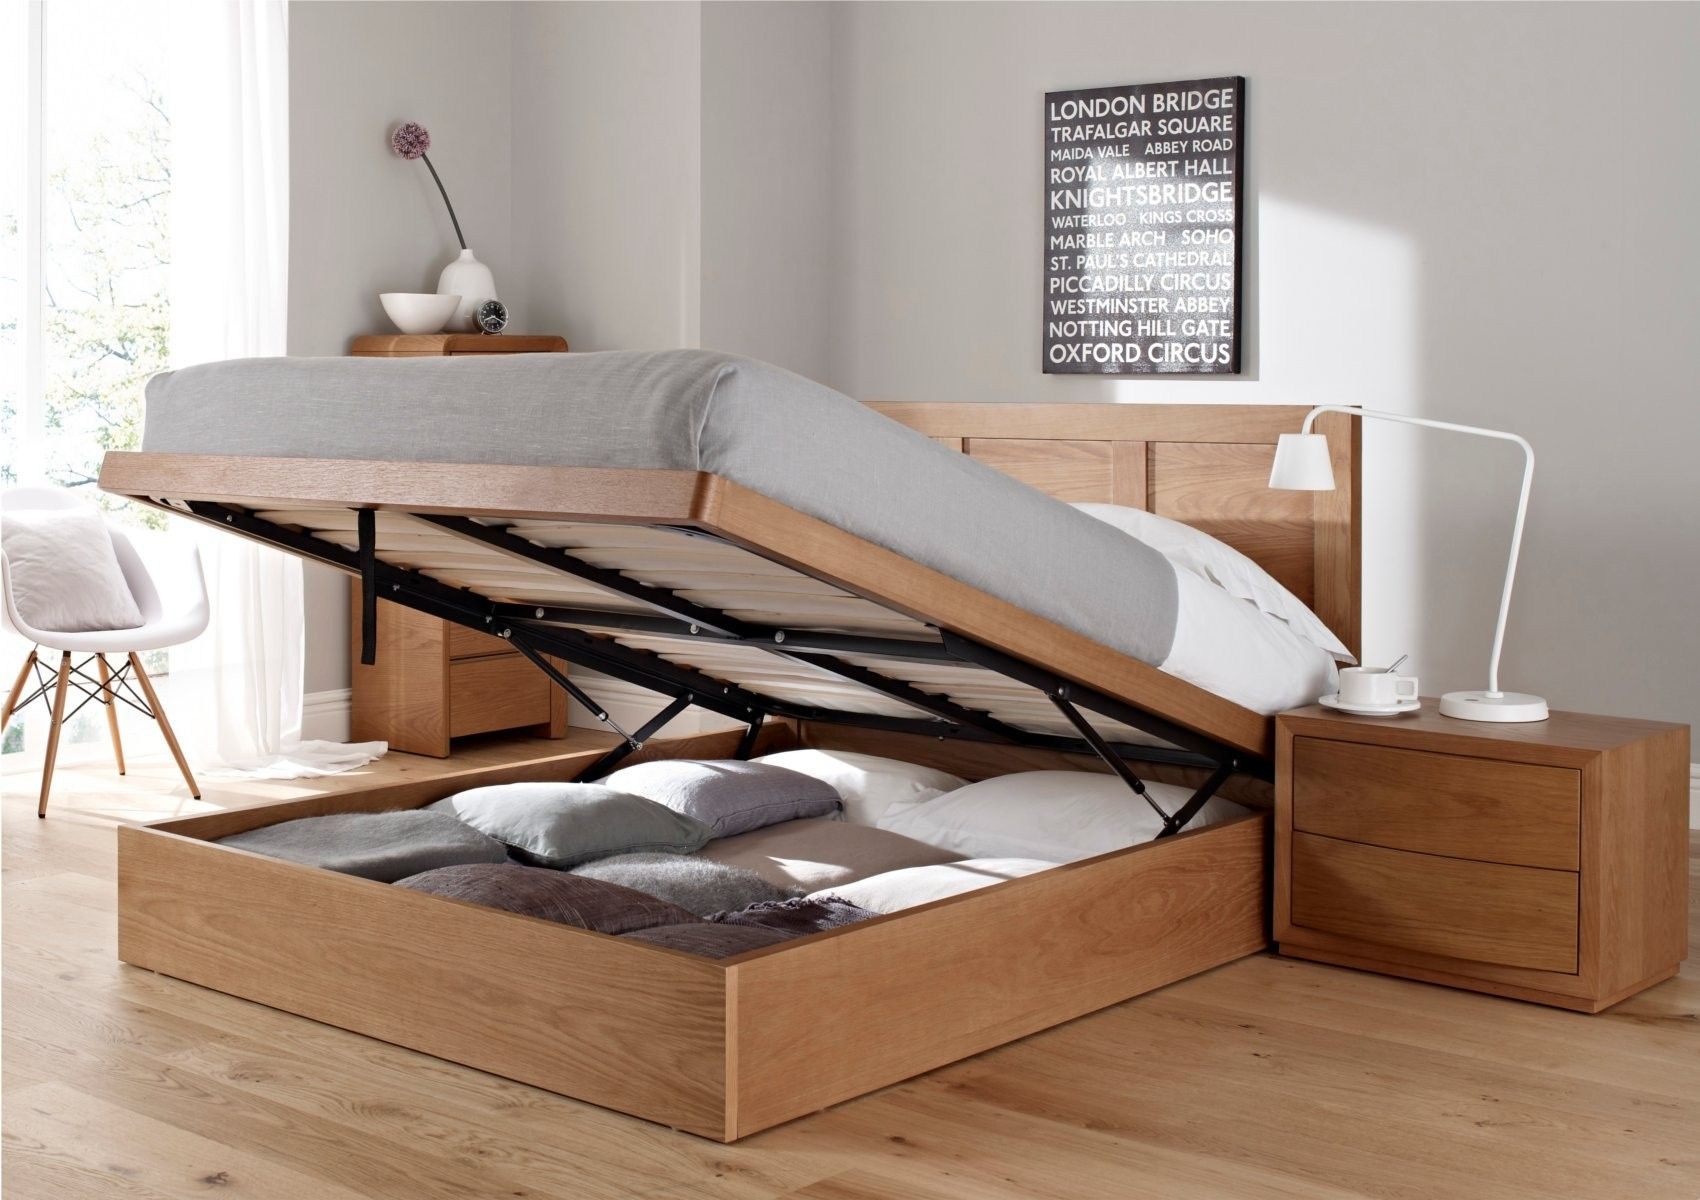 Oakland Ottoman Storage Bed, smart thinking to hide all the extra ...